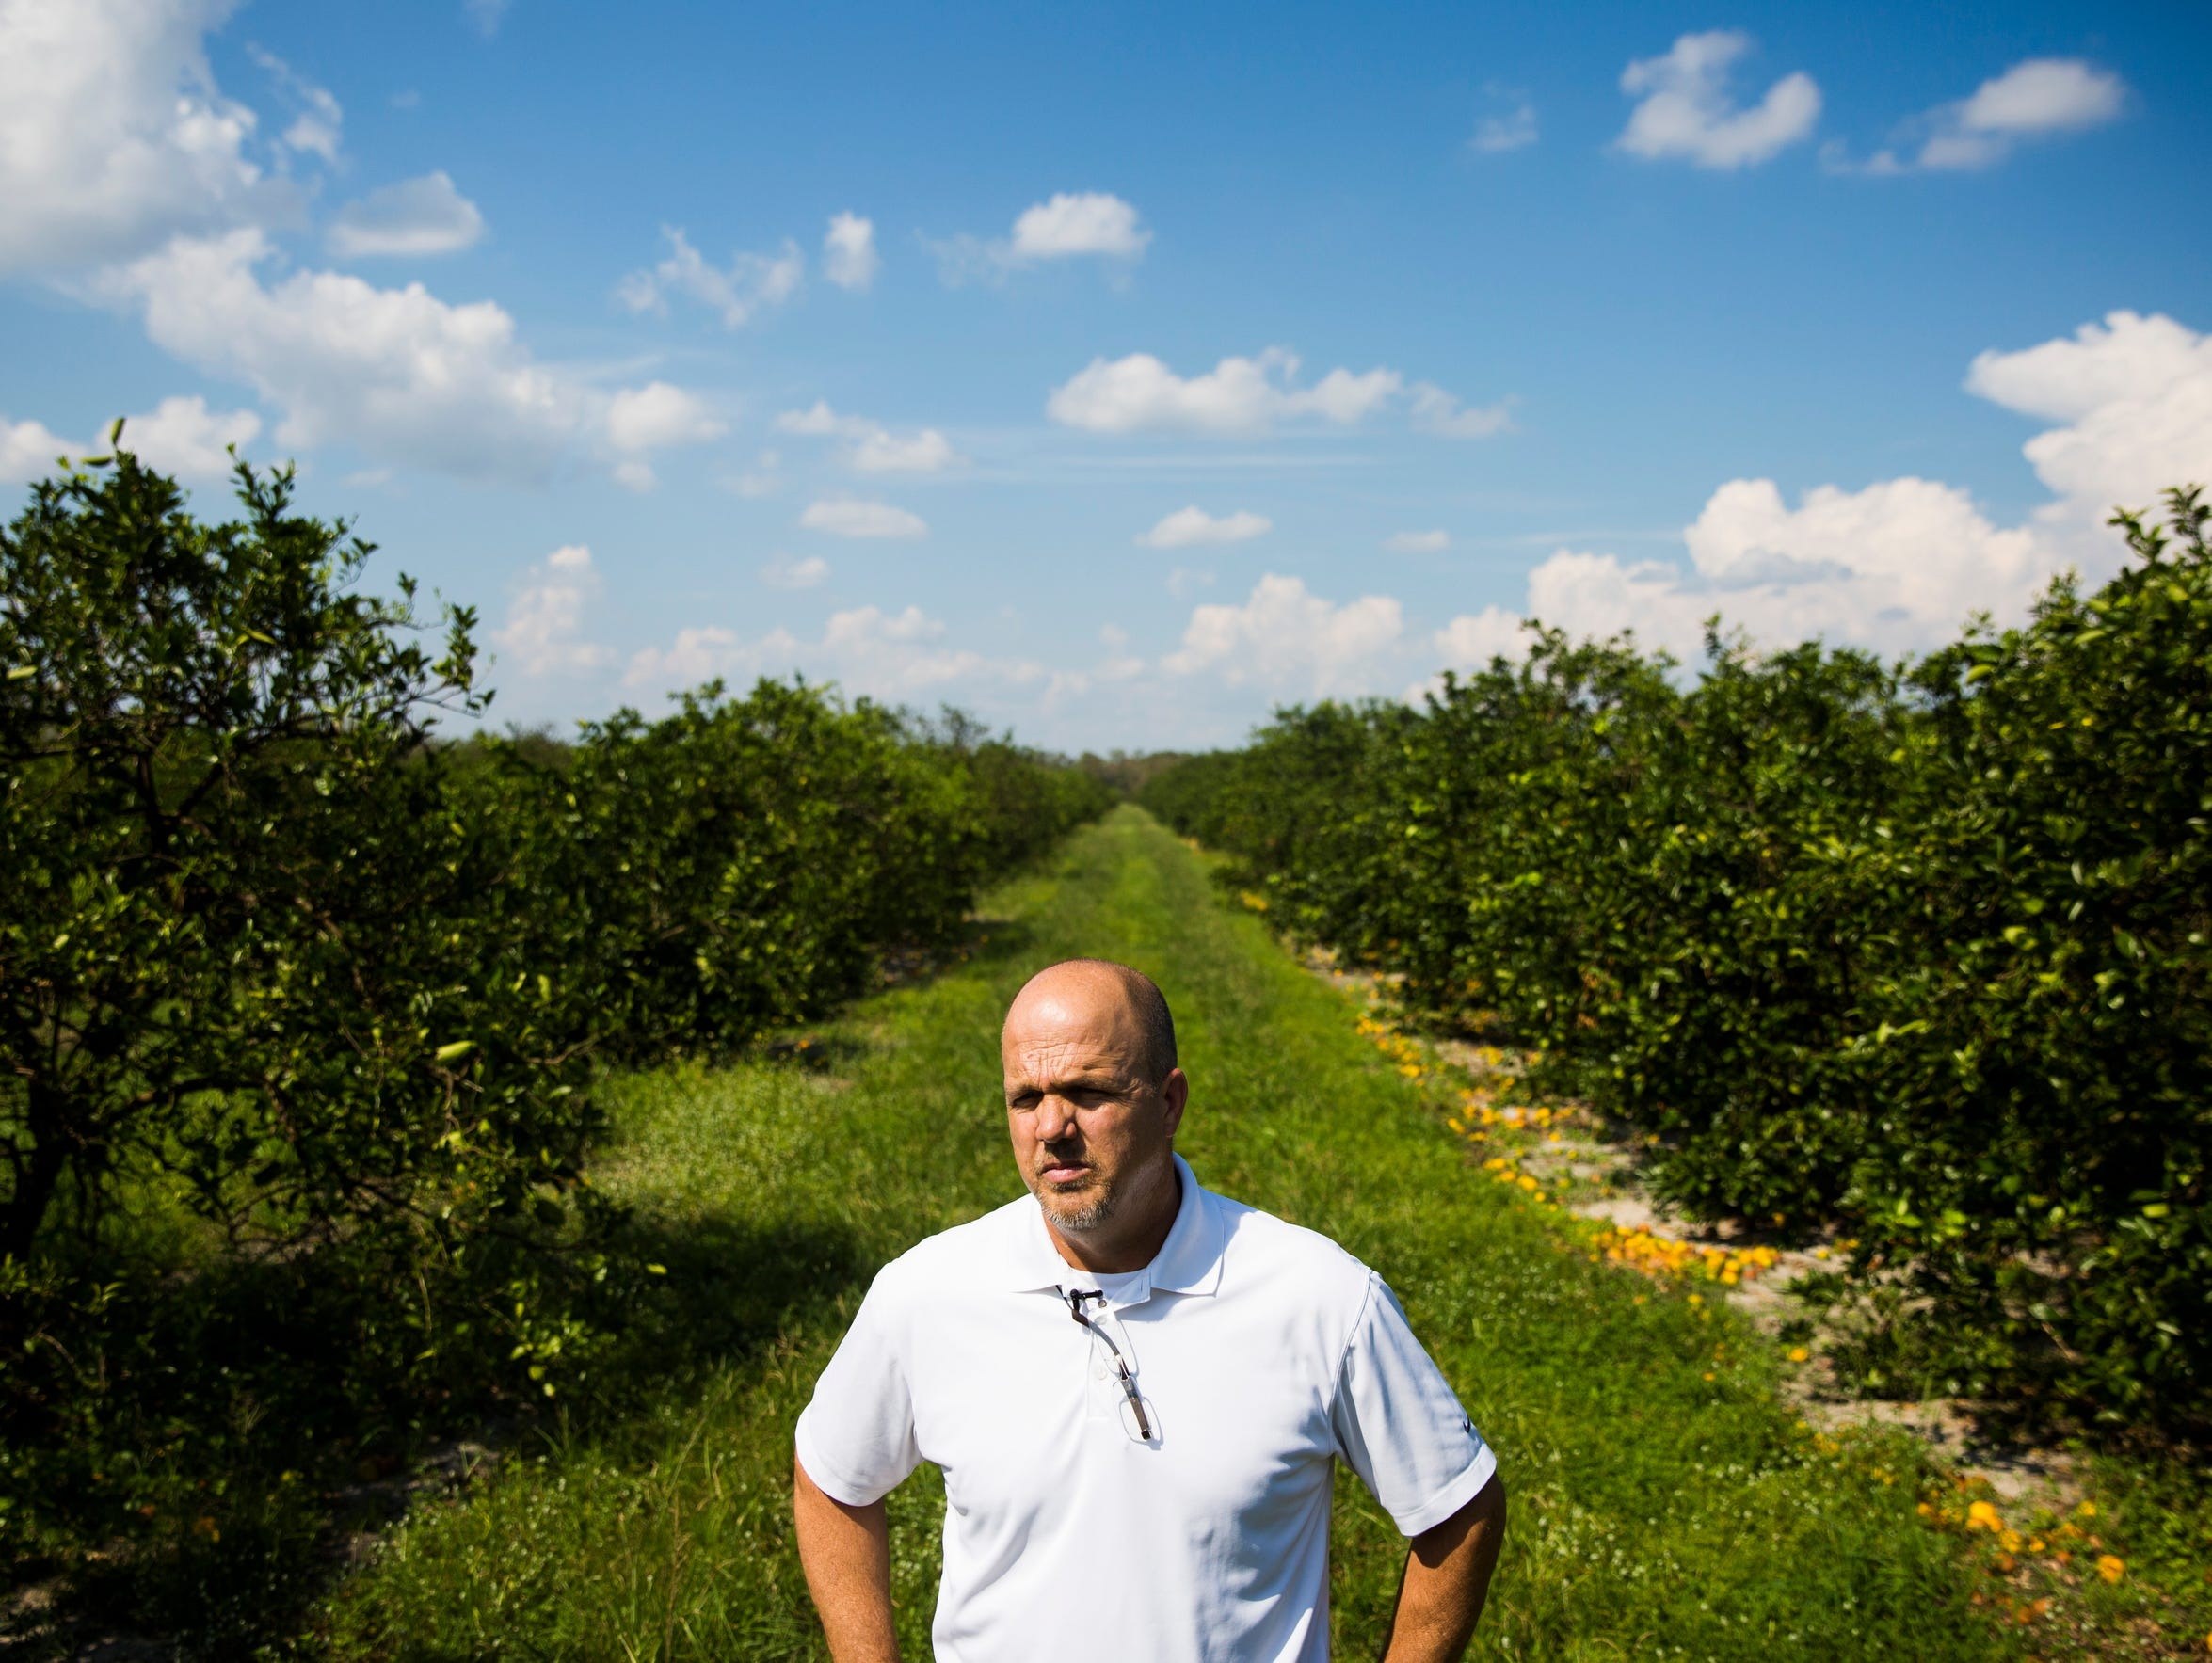 Paul Meador, a fourth-generation Floridian who owns